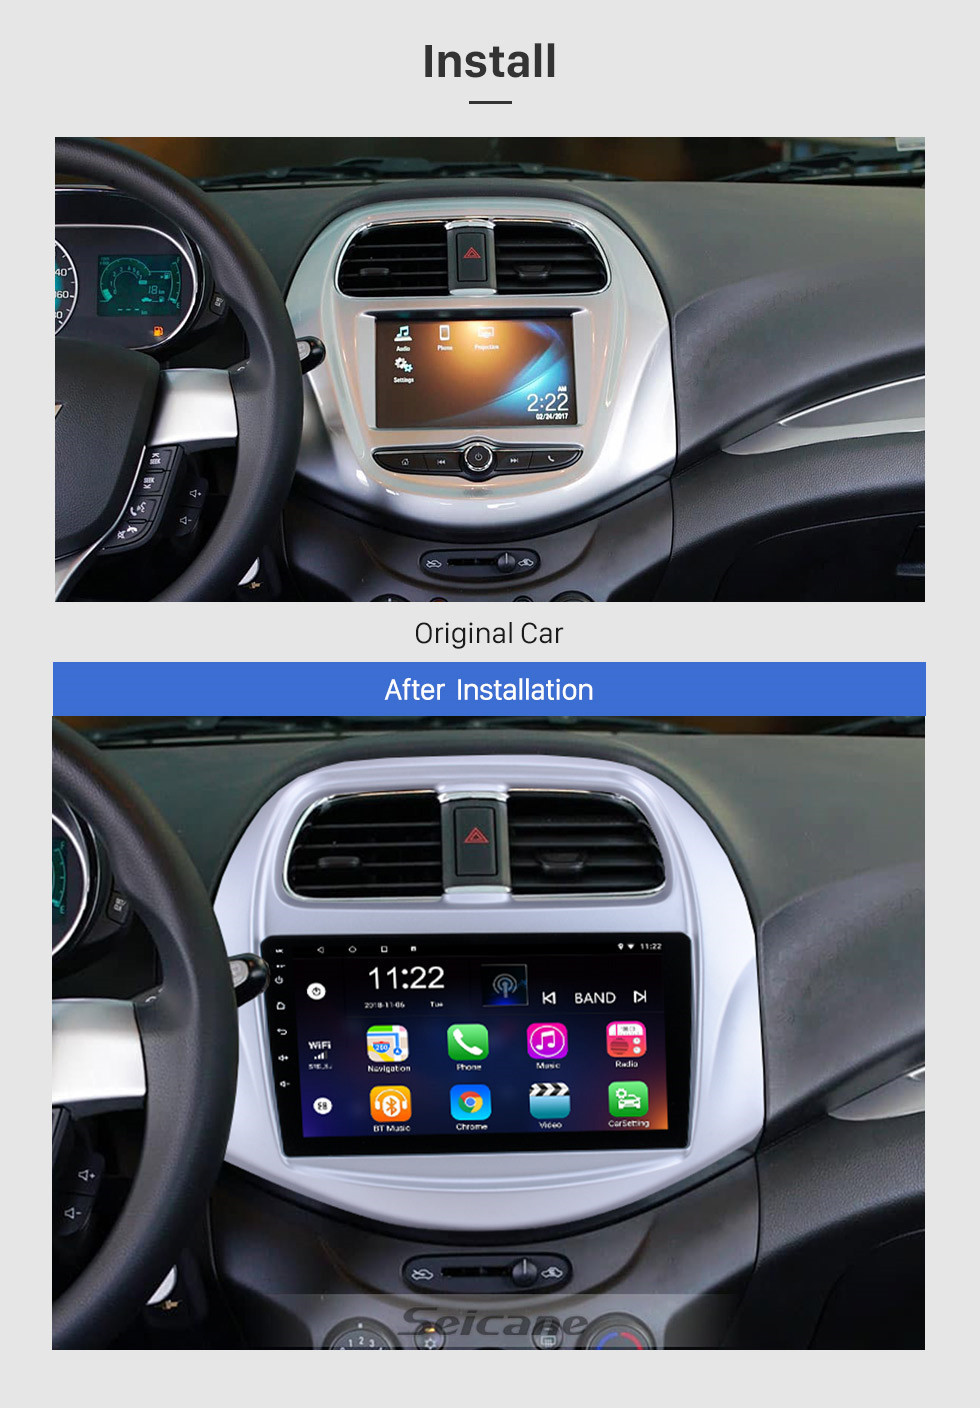 Seicane 2018 Chevy Chevrolet SPARK Android 10.0 HD Touchscreen 9 inch Buetooth GPS Navi Head unit auto radio with AUX WIFI Steering Wheel Control CPU support Rear view Camera DVR OBD